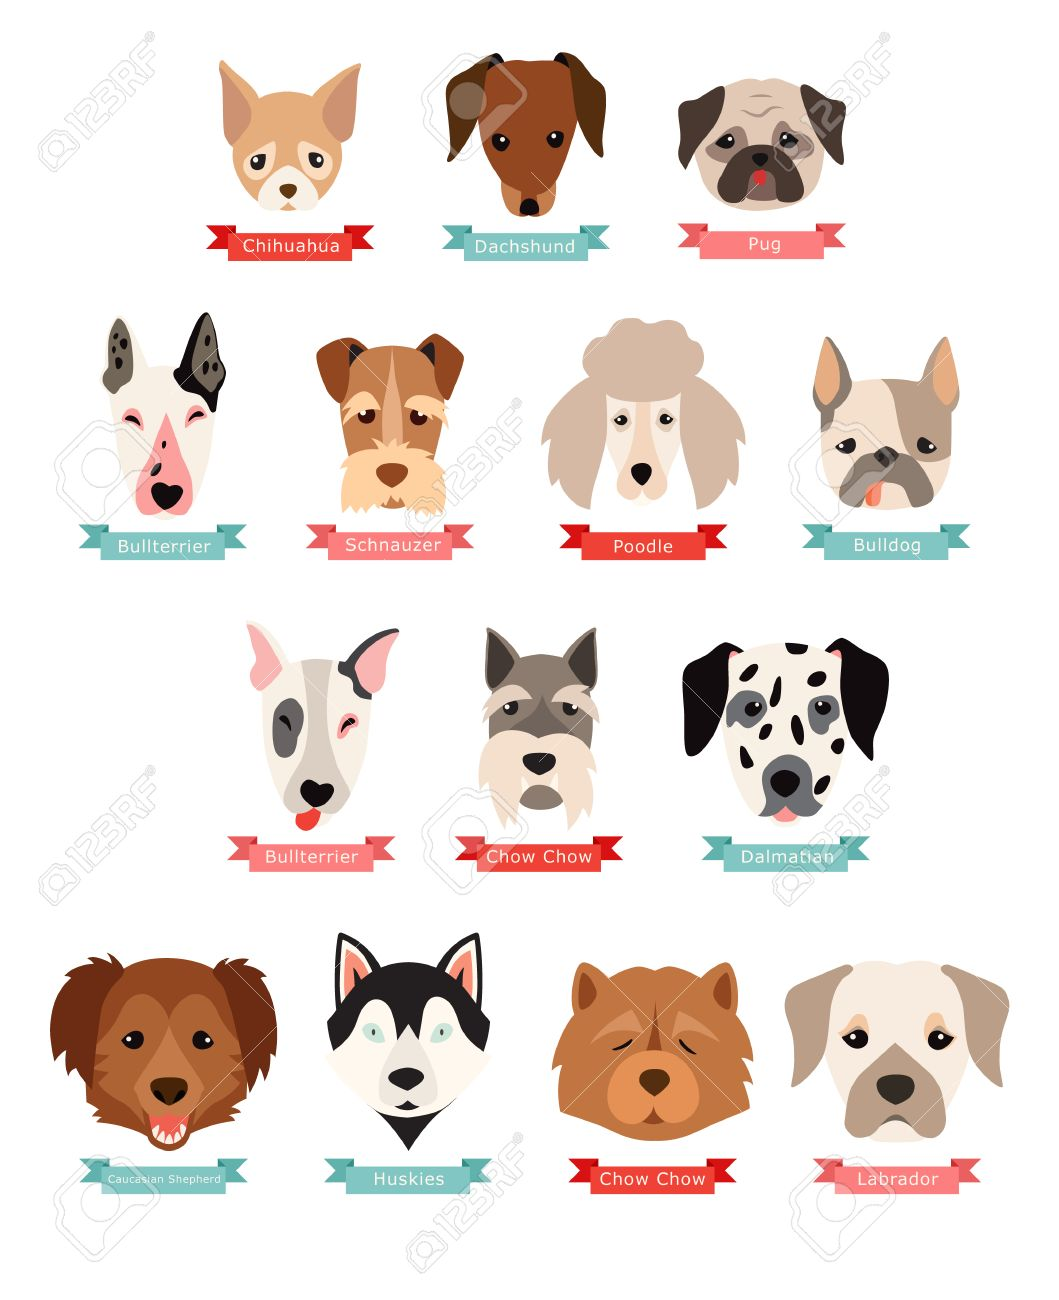 Dog Breeds Collection With Ribbon And Name Vector Flat Illustrations Royalty Free Cliparts Vectors And Stock Illustration Image 65979798